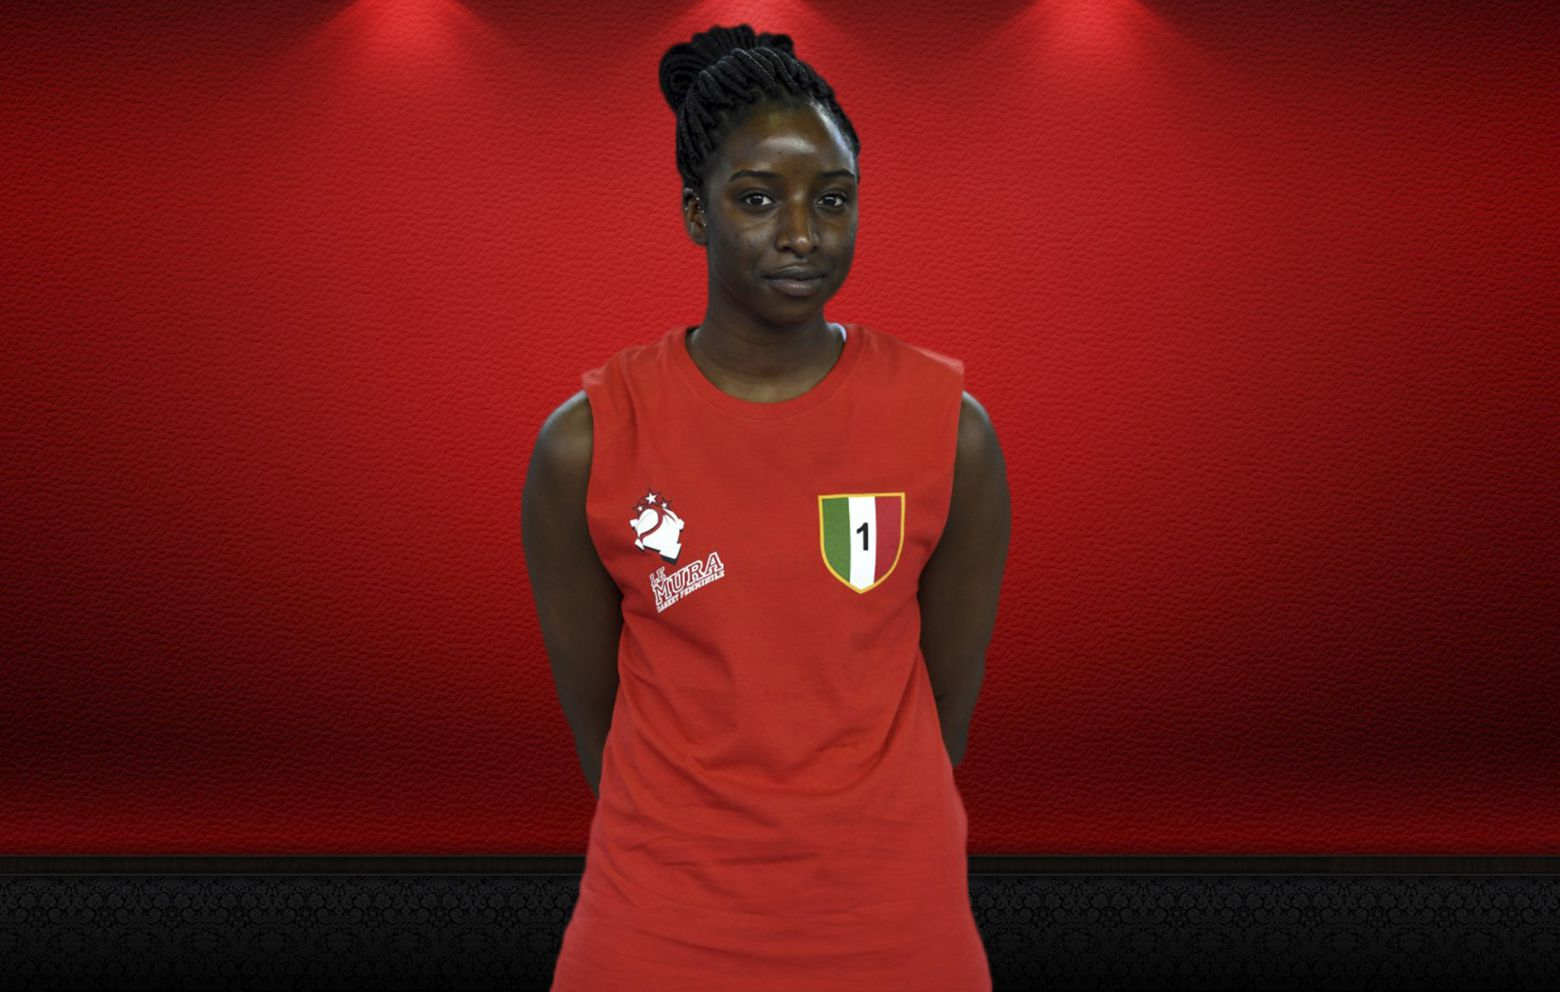 BINTA DRAMMEH has signed with Regeneracom Sports